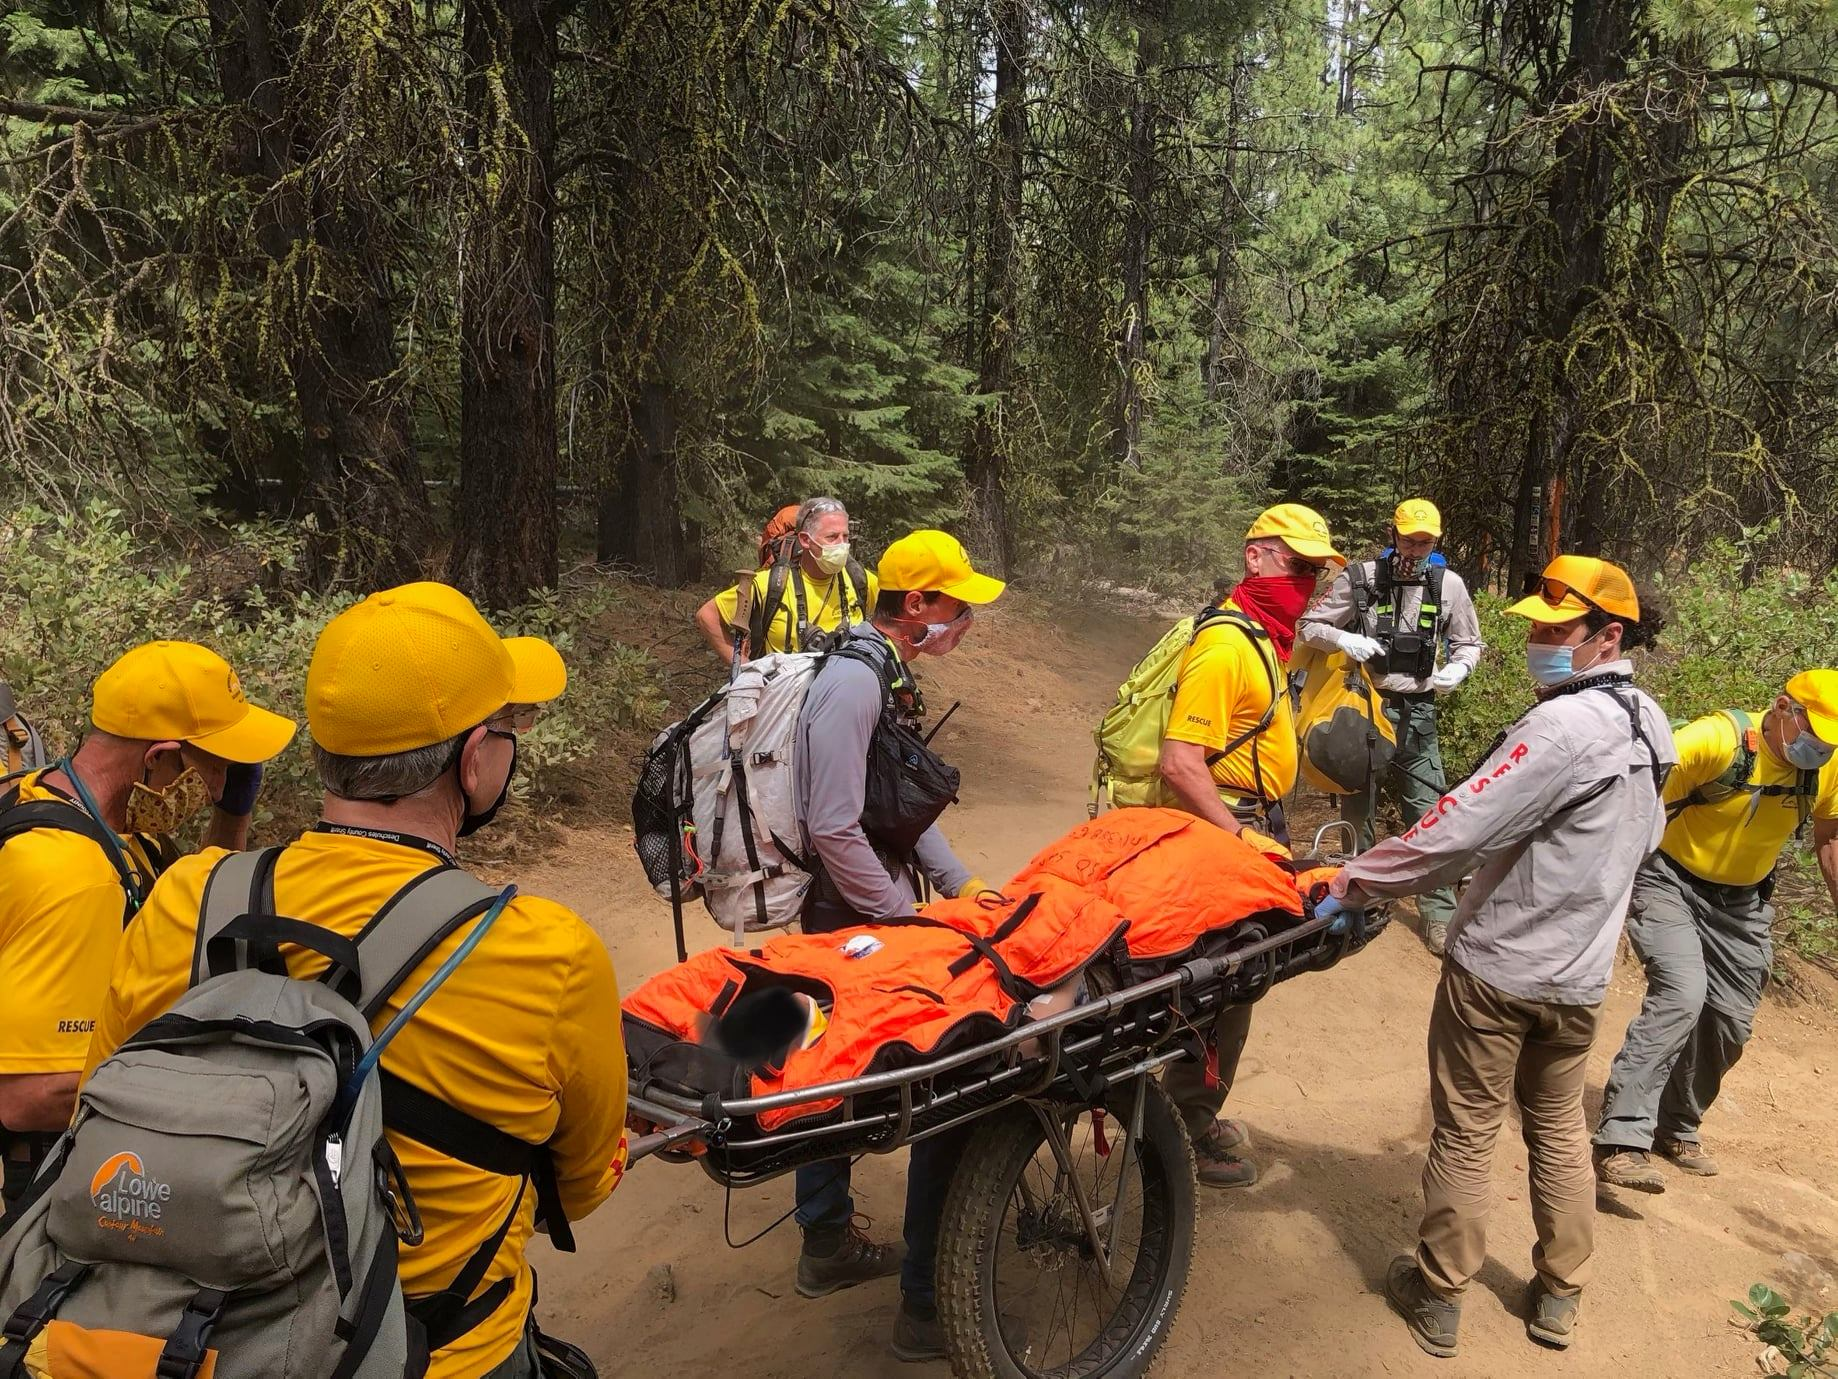 DESCHUTES COUNTY SHERIFF'S OFFICE SEARCH AND RESCUE ASSIST INJURED MOUNTAIN BIKER ON TIDDLYWINKS TRAIL WEST OF BEND